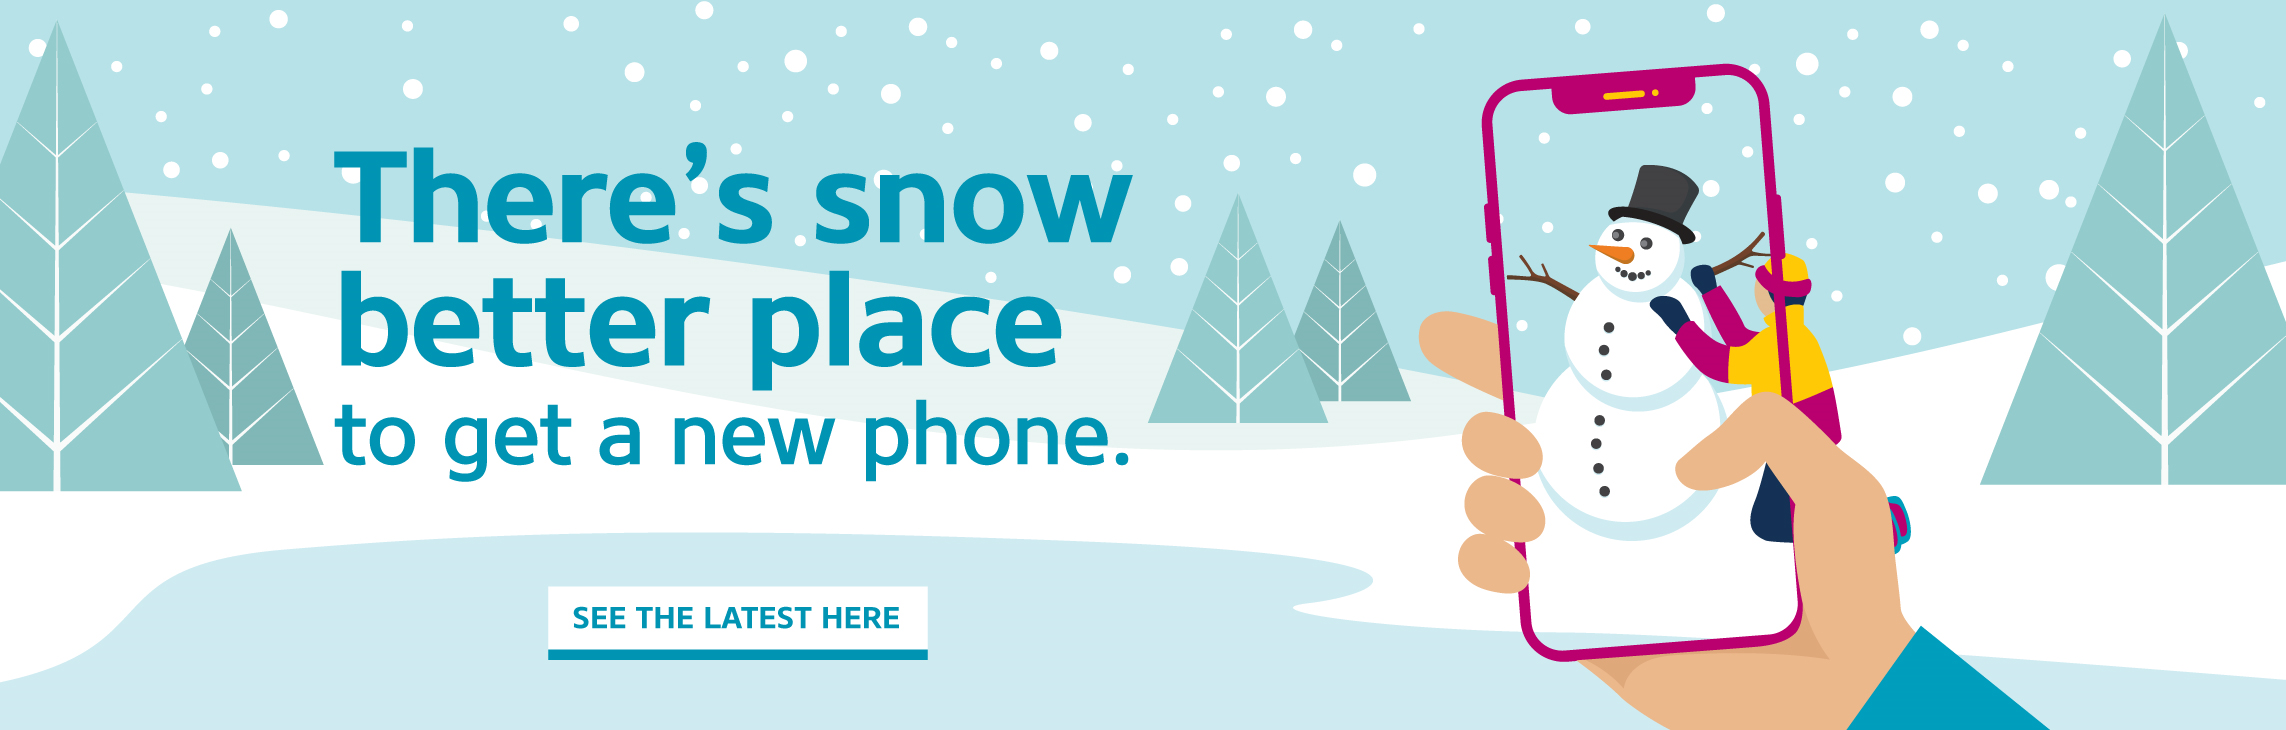 There's snow better place to get a new phone